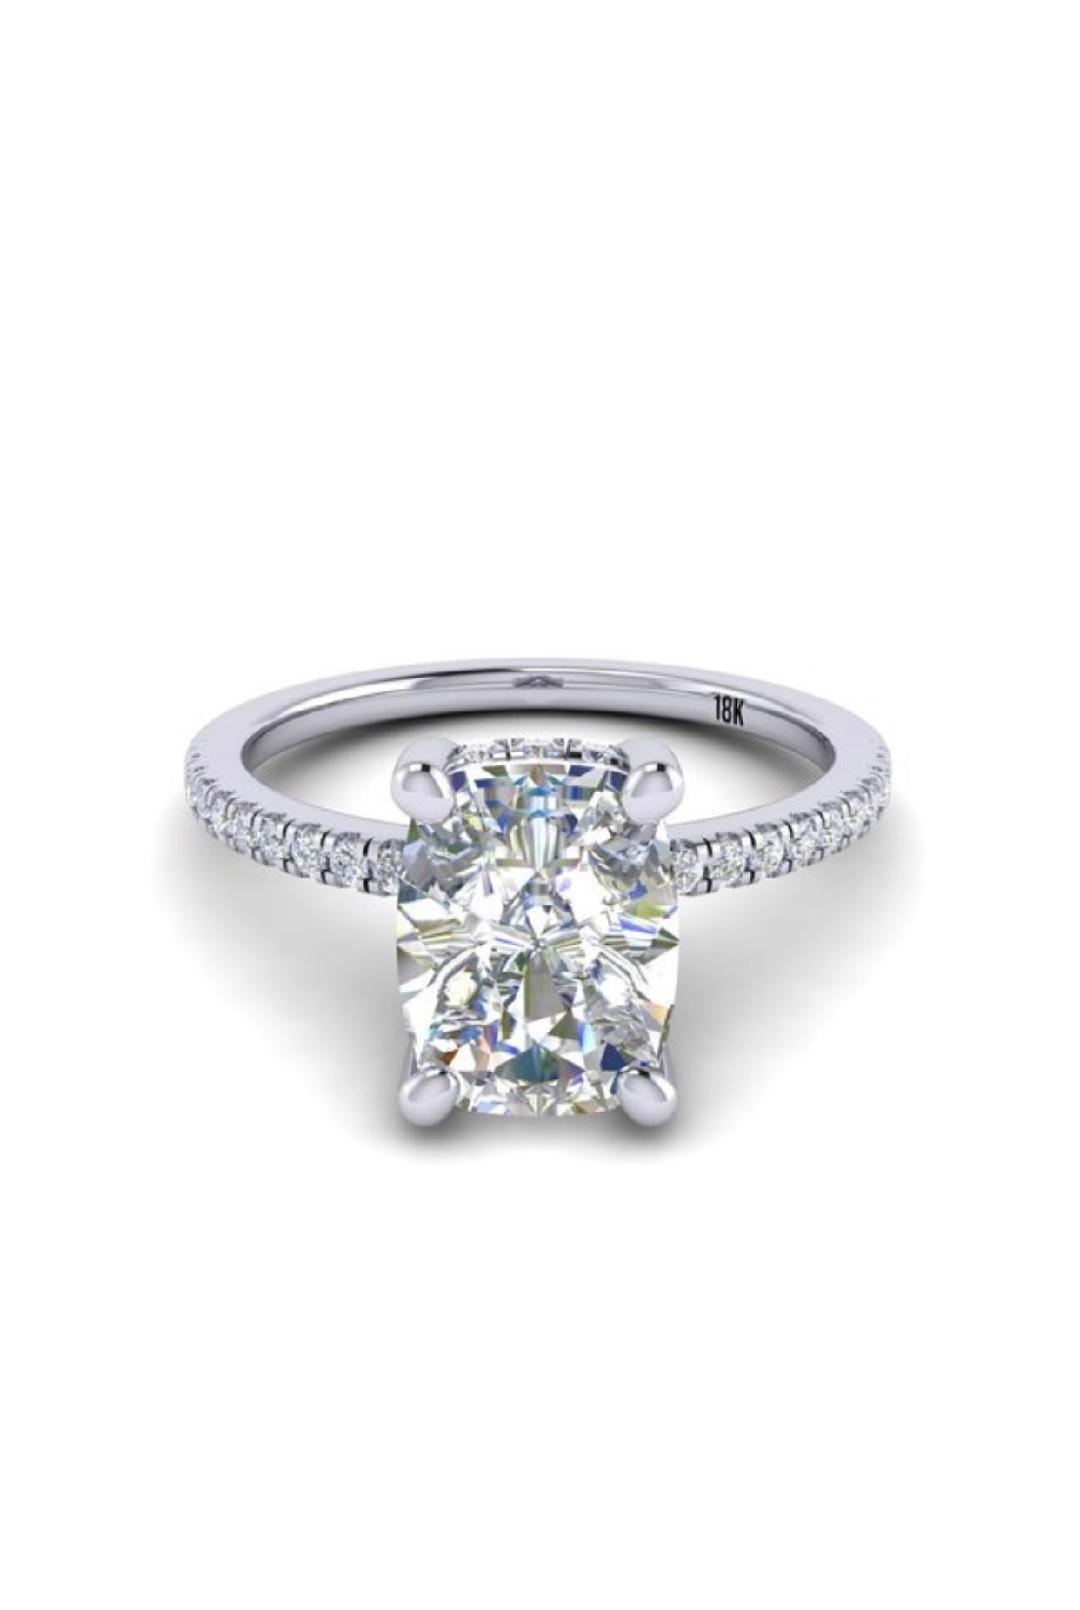 custom engagement ring big stone.jpg